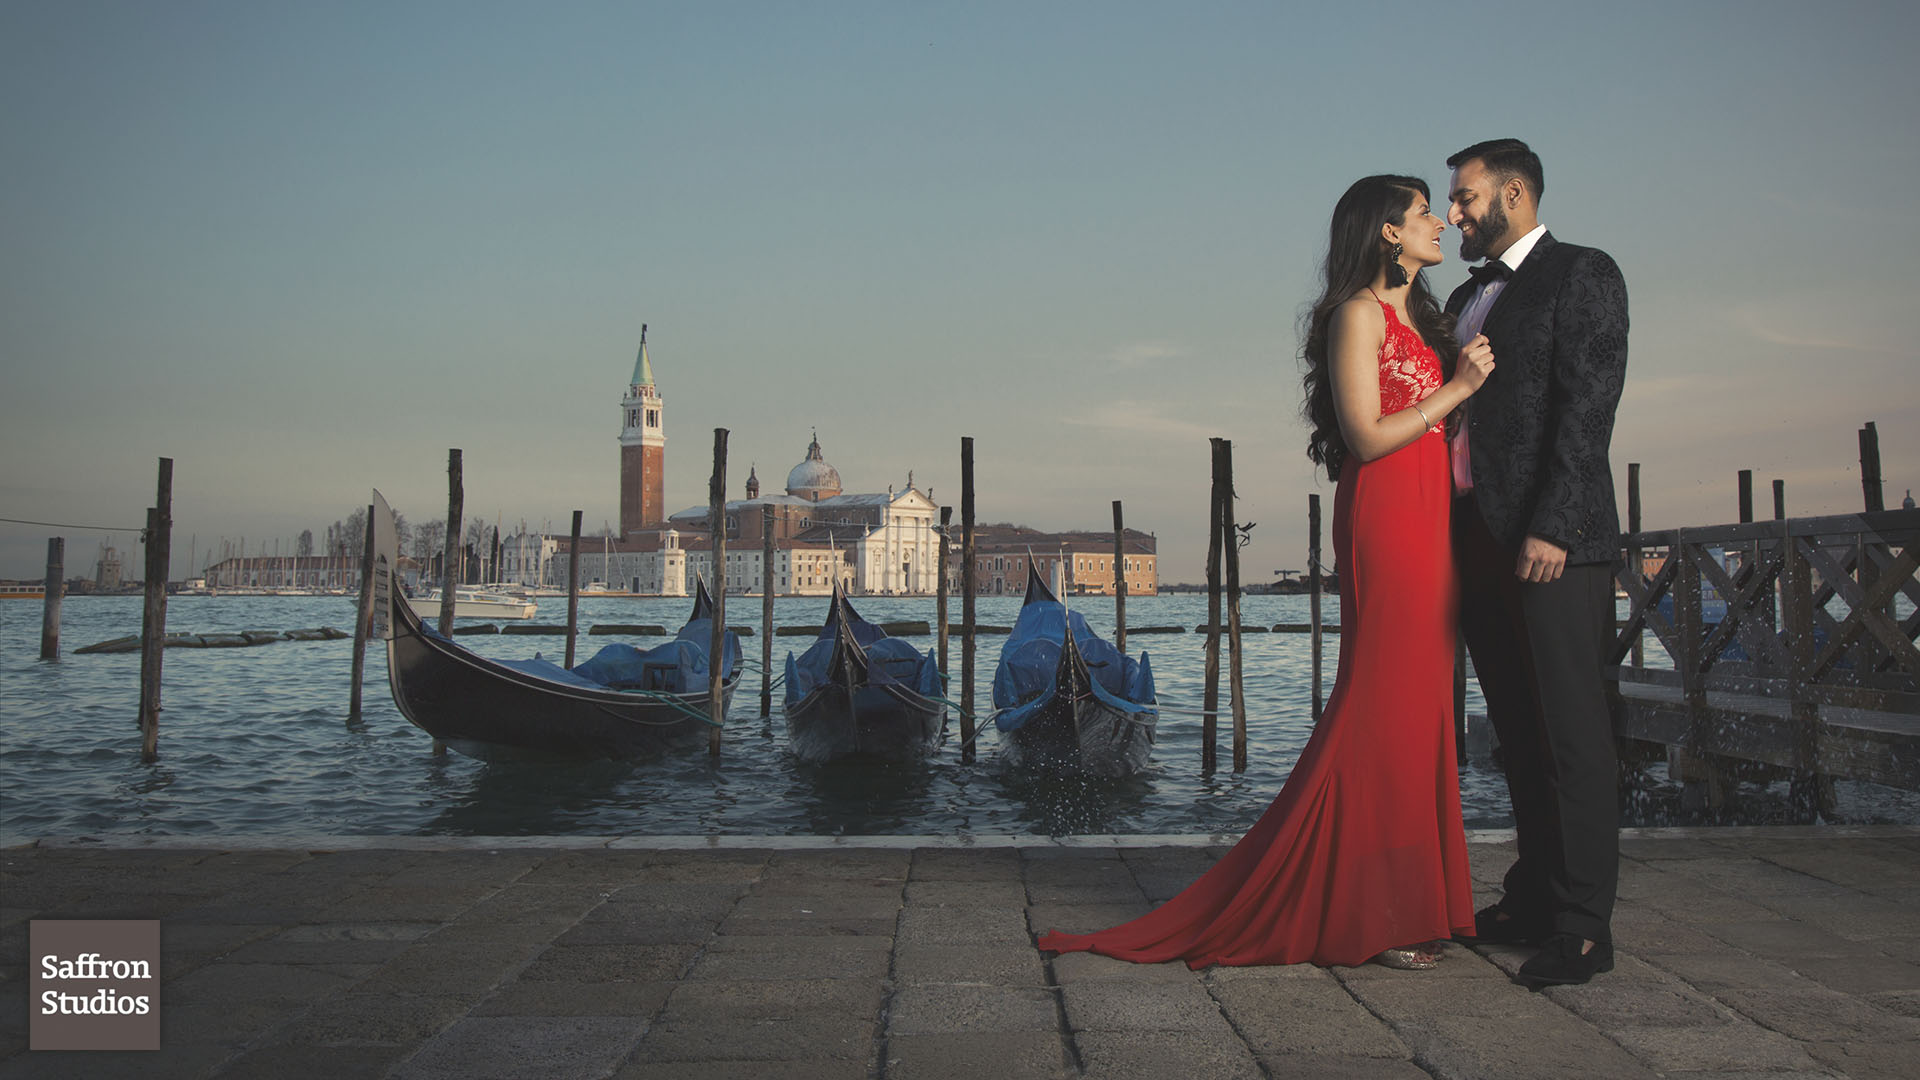 Venice Photoshoot Destination Wedding